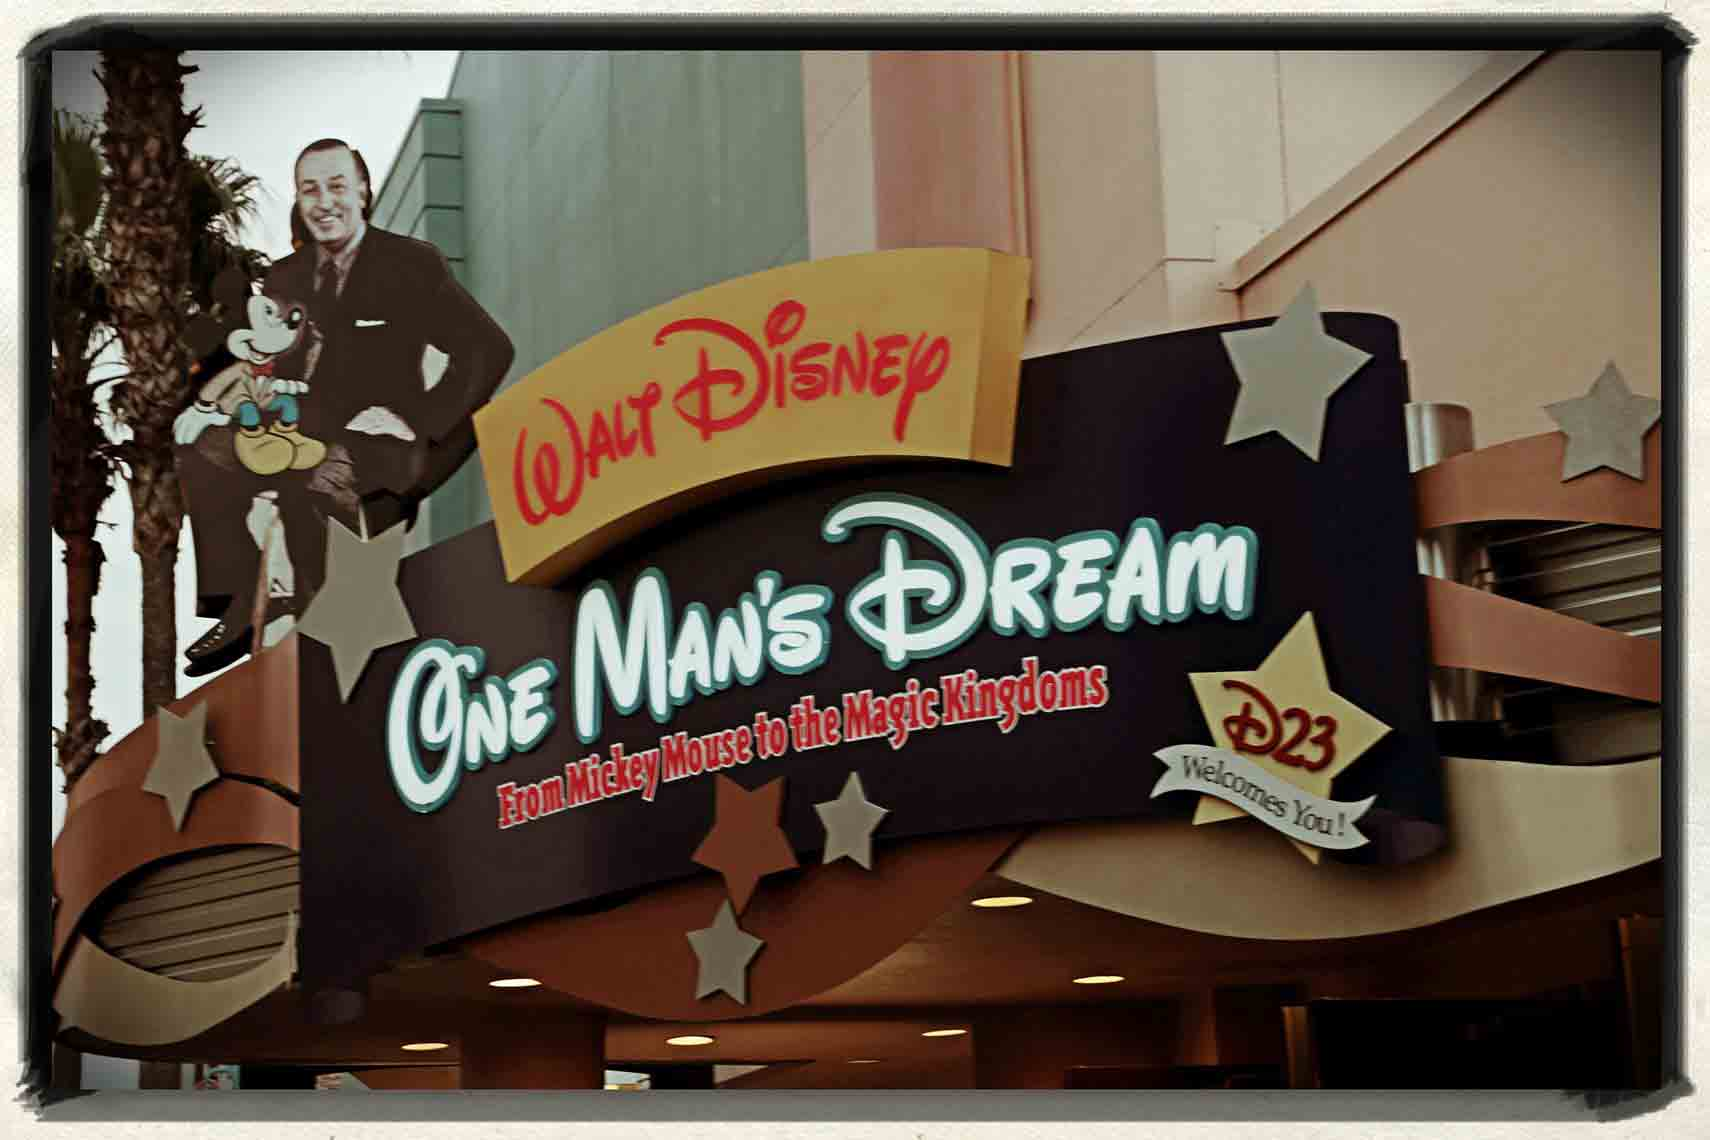 Disney-Entrance-One-Mans-Dream-by-David-Fox-Photographer